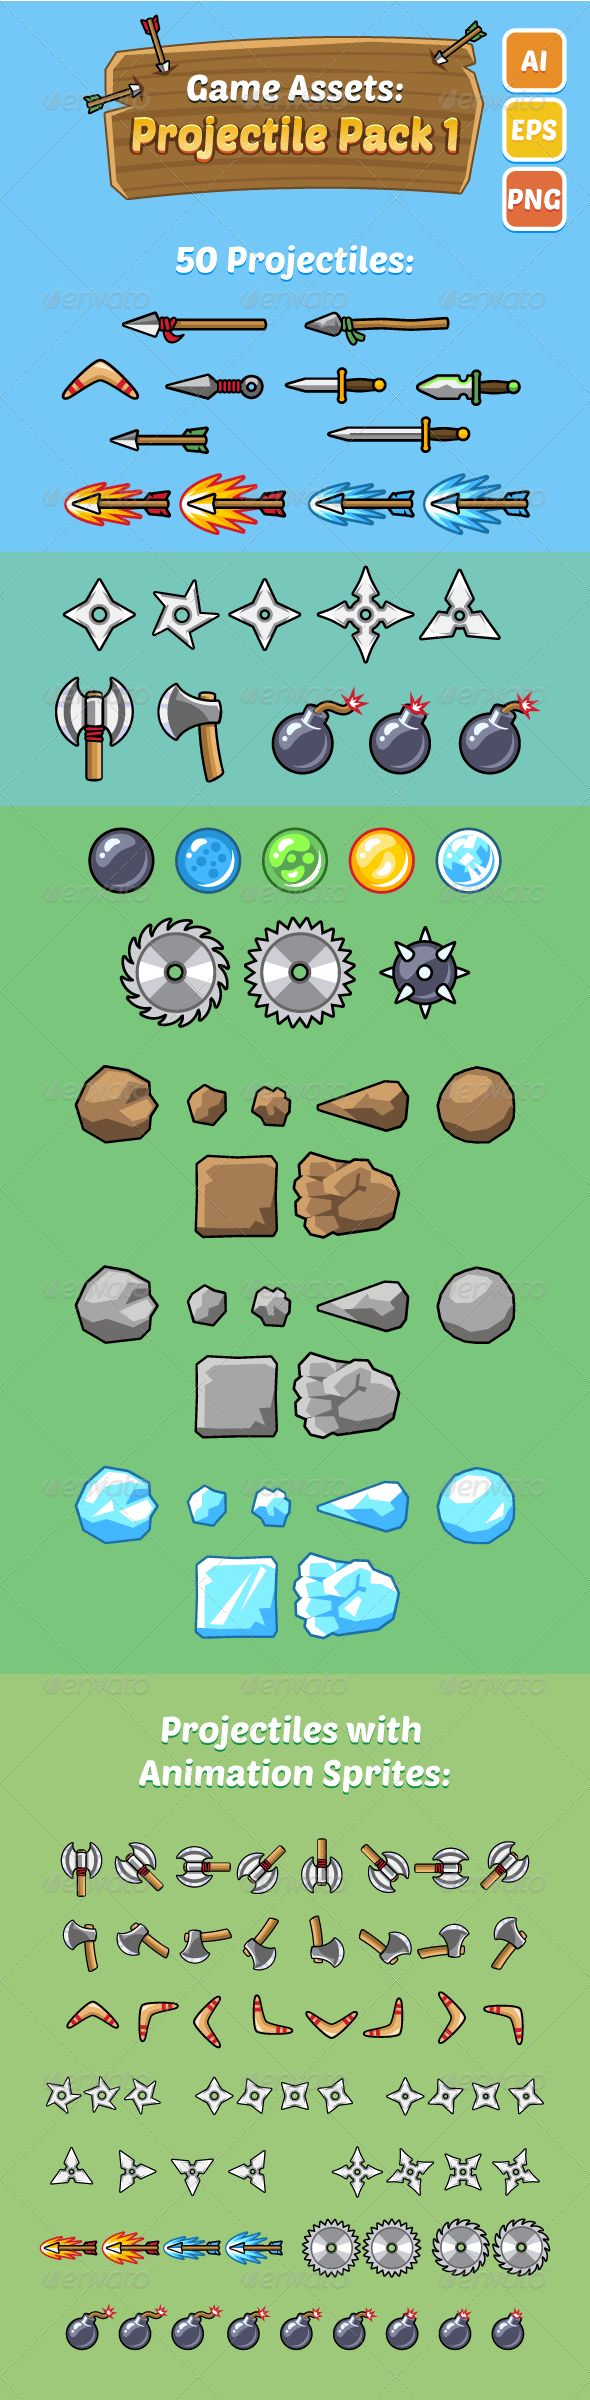 Game Assets: Projectile Pack 1 Download here: https://graphicriver.net/item/game-assets-projectile-pack-1/7654040?ref=KlitVogli